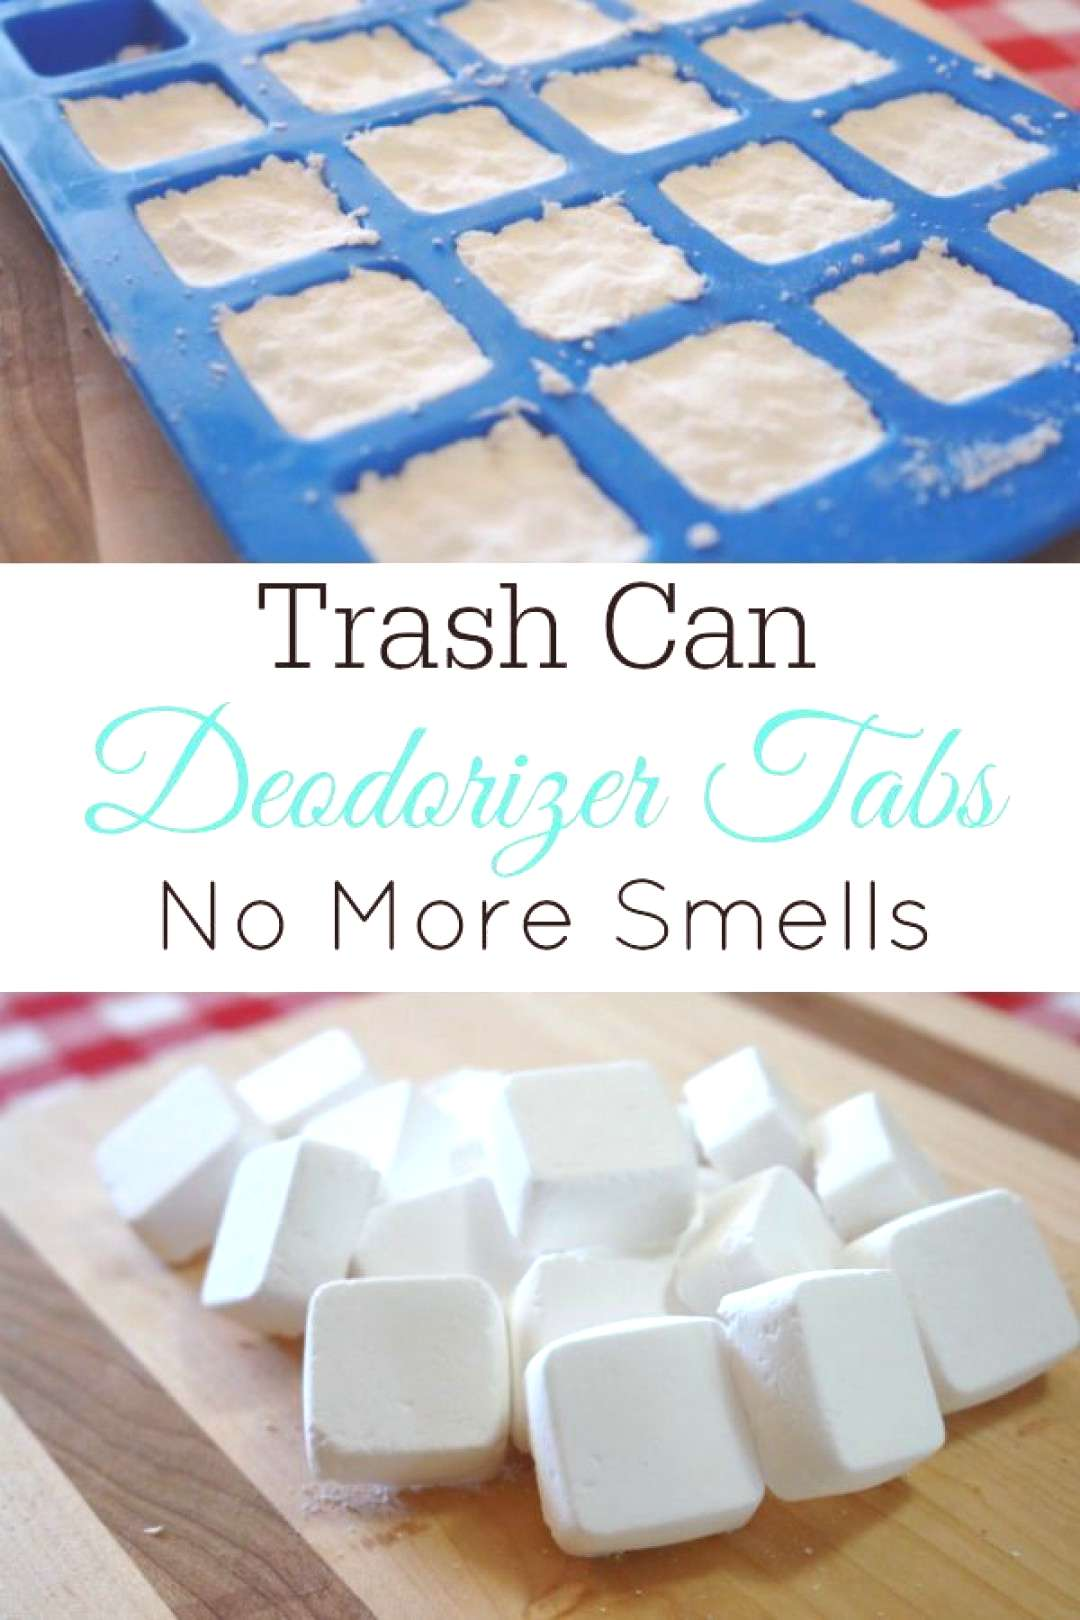 How to Make Trash Can Deodorizer Tabs - Retro Housewife Goes Green